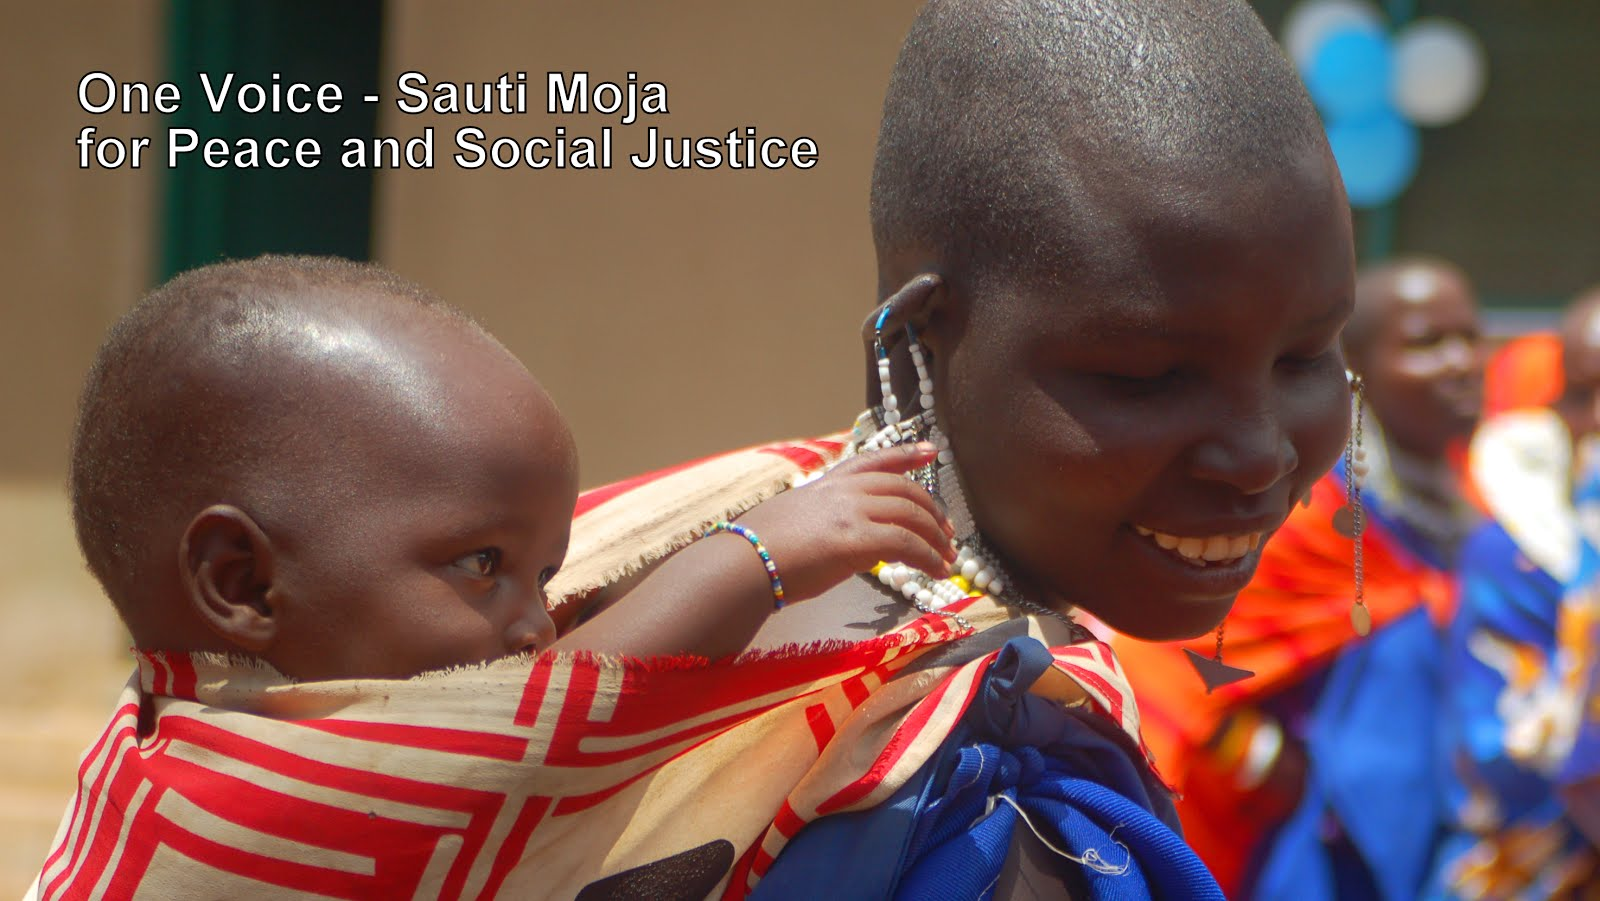 Sauti Moja Program Overview Video - click picture